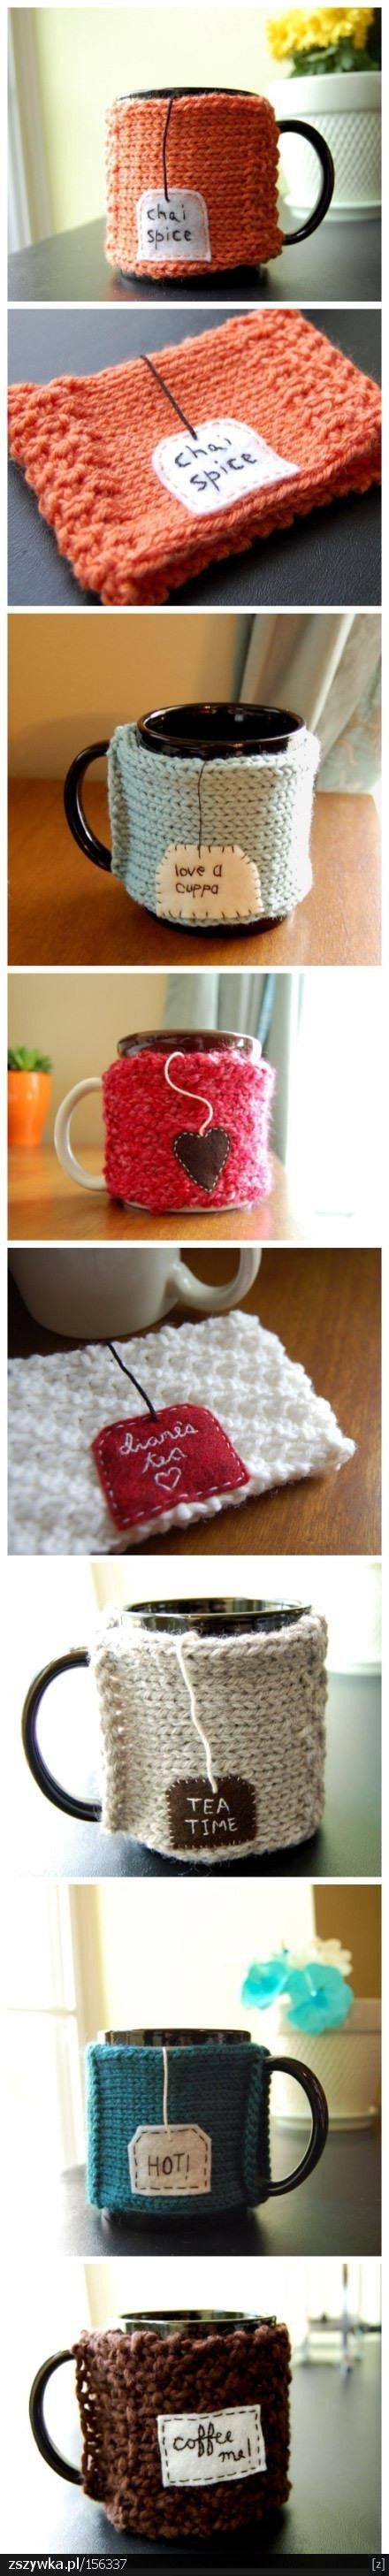 Easy mug snugs. Knit or Crochet a rectangle the width of a mug and long enough to wrap around a mug (make sure it is going to be tight). Embroider a felt applique. Fold in half length-wise and where the corners meet, a few slip stitches at each end and you are done! Great gift idea!